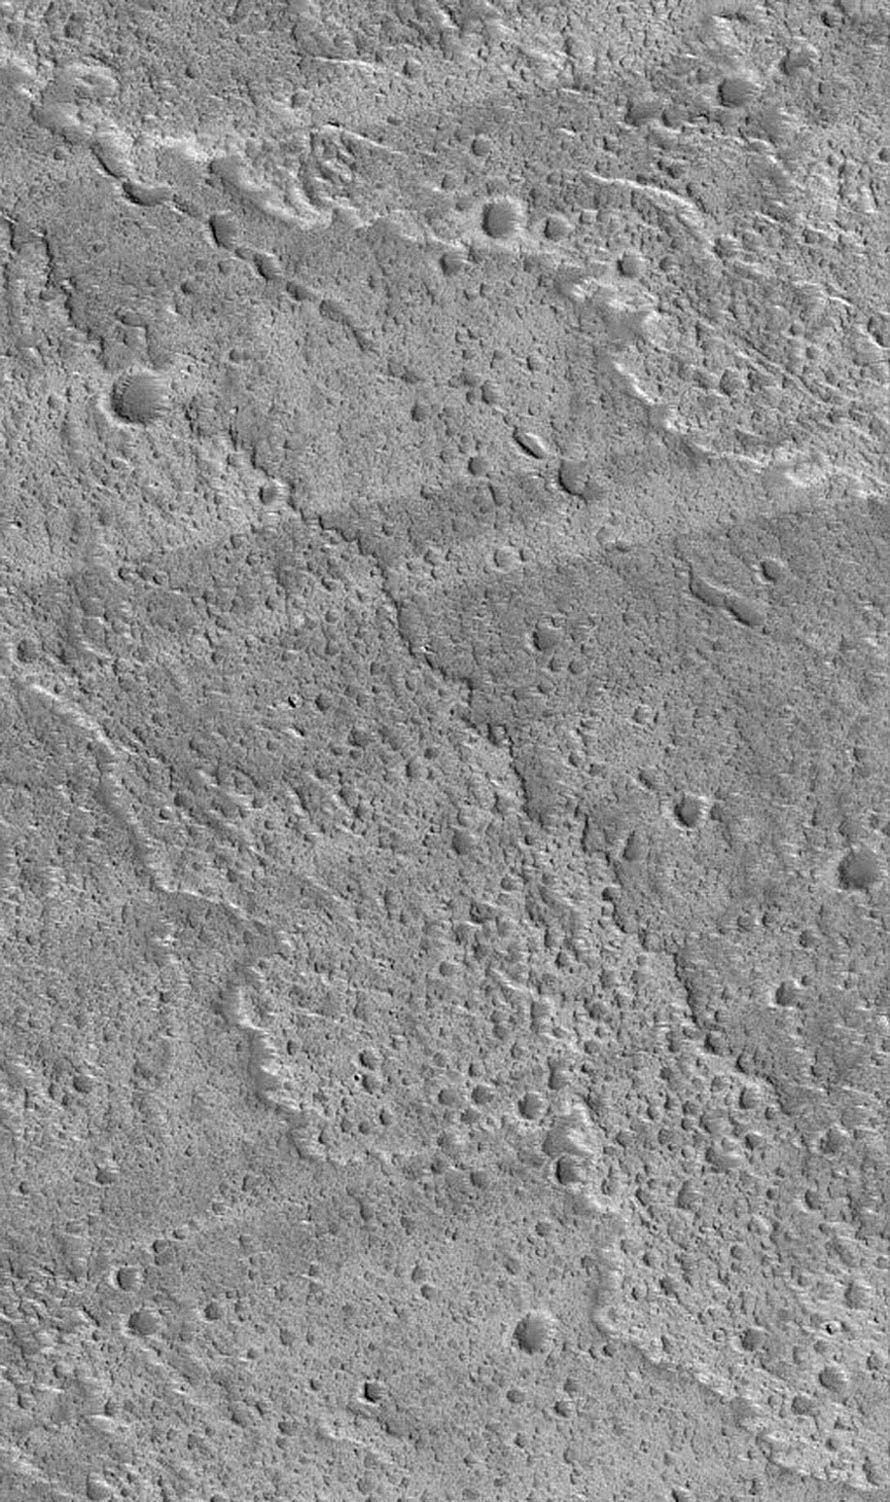 NASA's Mars Global Surveyor shows alternating light and dark wind streaks superimposed over a rugged lava flow surface on the west flank of the volcano, Ascraeus Mons on Mars.